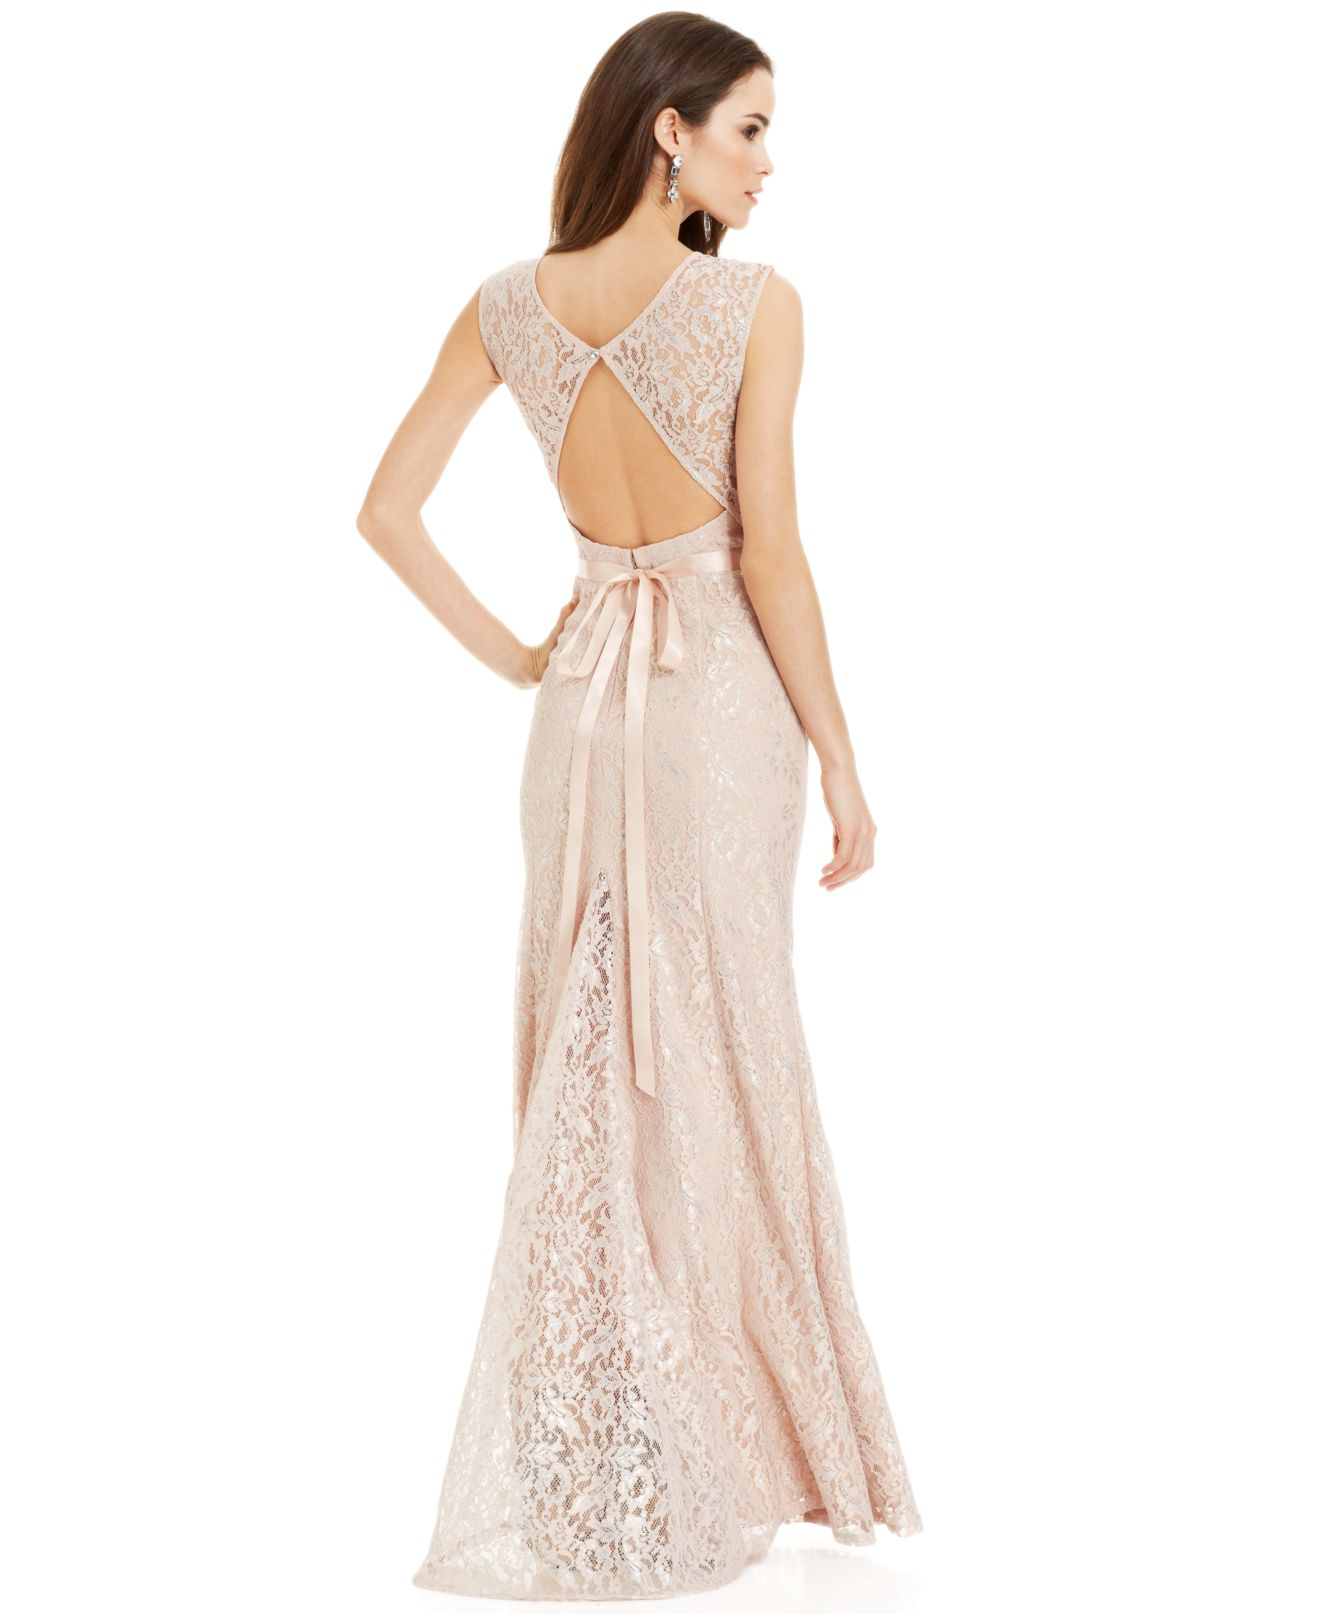 Lyst - Betsy & Adam Metallic Lace Pleated Gown in Natural